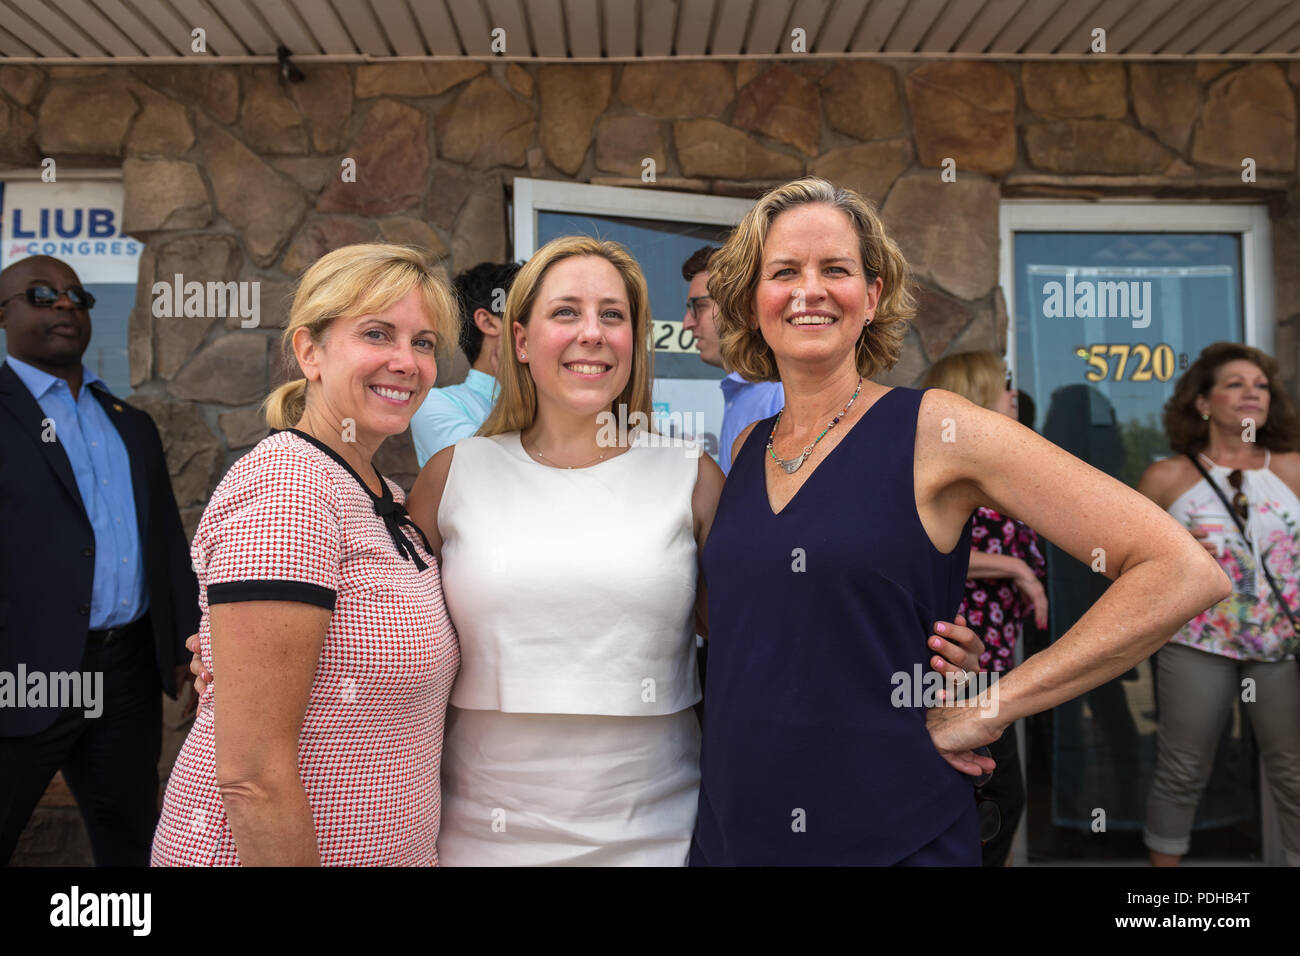 Massapequa, New York, USA. 5th Aug, 2018. L-R, Democrats LAURA GILLEN, Hempstead Town Supervisor; LIUBA GRECHEN SHIRLEY, Congressional candidate for NY 2nd District; and LAURA CURRAN, Nasssau County Executive, pose at campaign office opening, aiming for a Democratic Blue Wave in November midterm elections. Credit: Ann Parry/ZUMA Wire/Alamy Live News - Stock Image